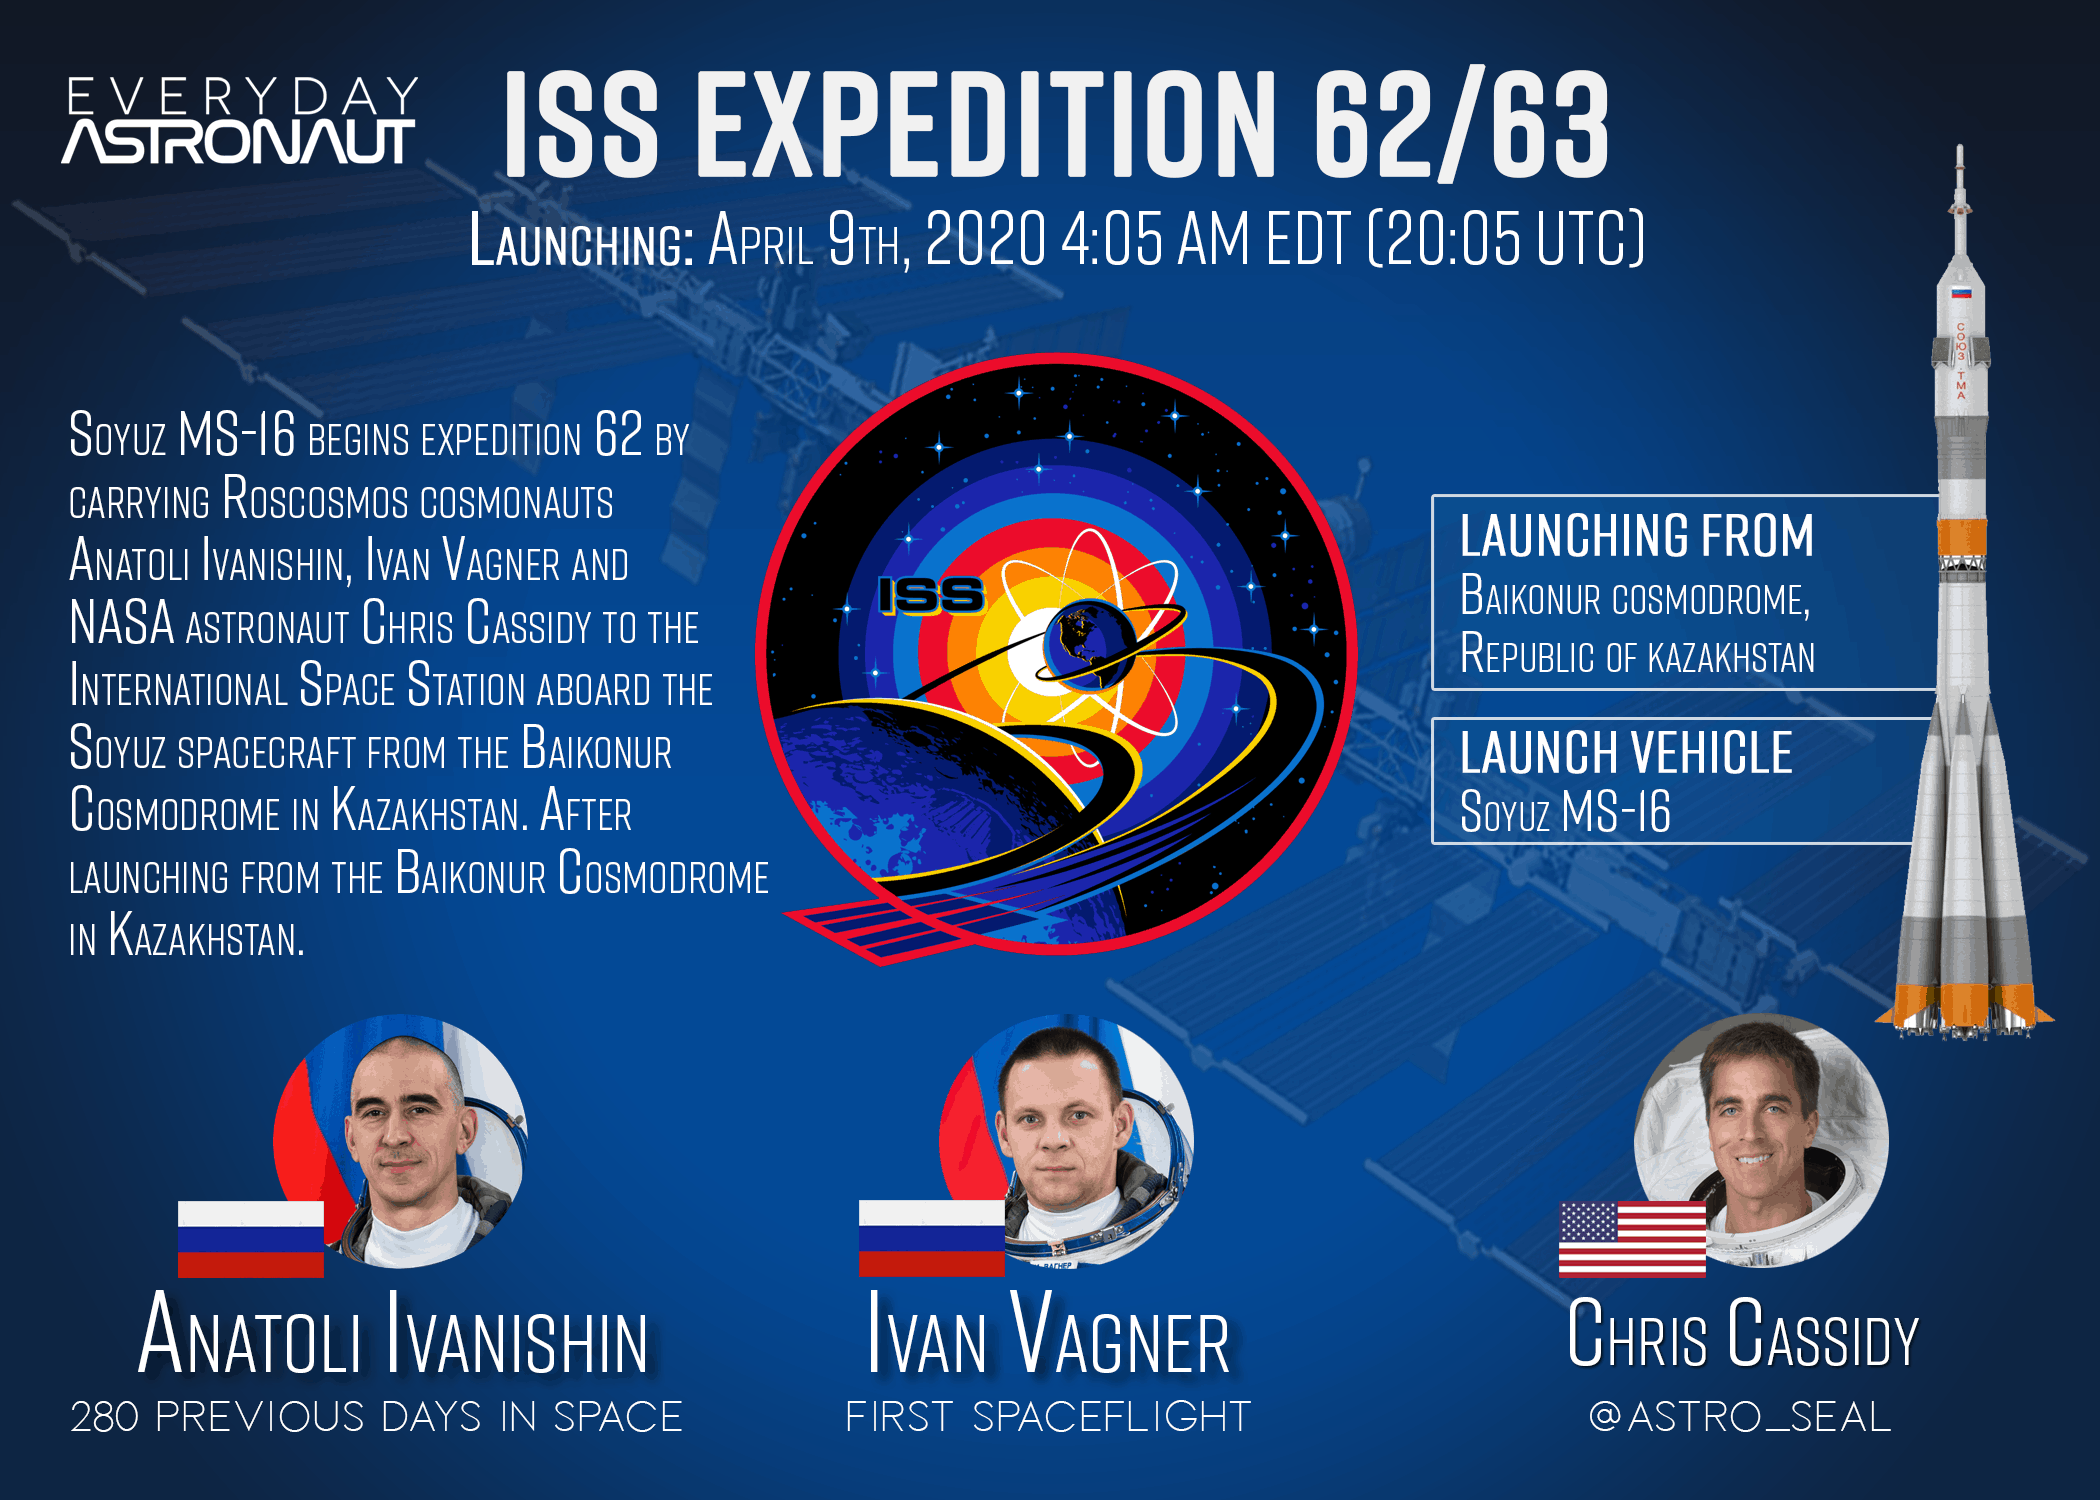 Soyuz 2.1a and Soyuz MS-16 mission infographic with the crew and the launch vehicle, including the Expedition 62/63 mission patch.